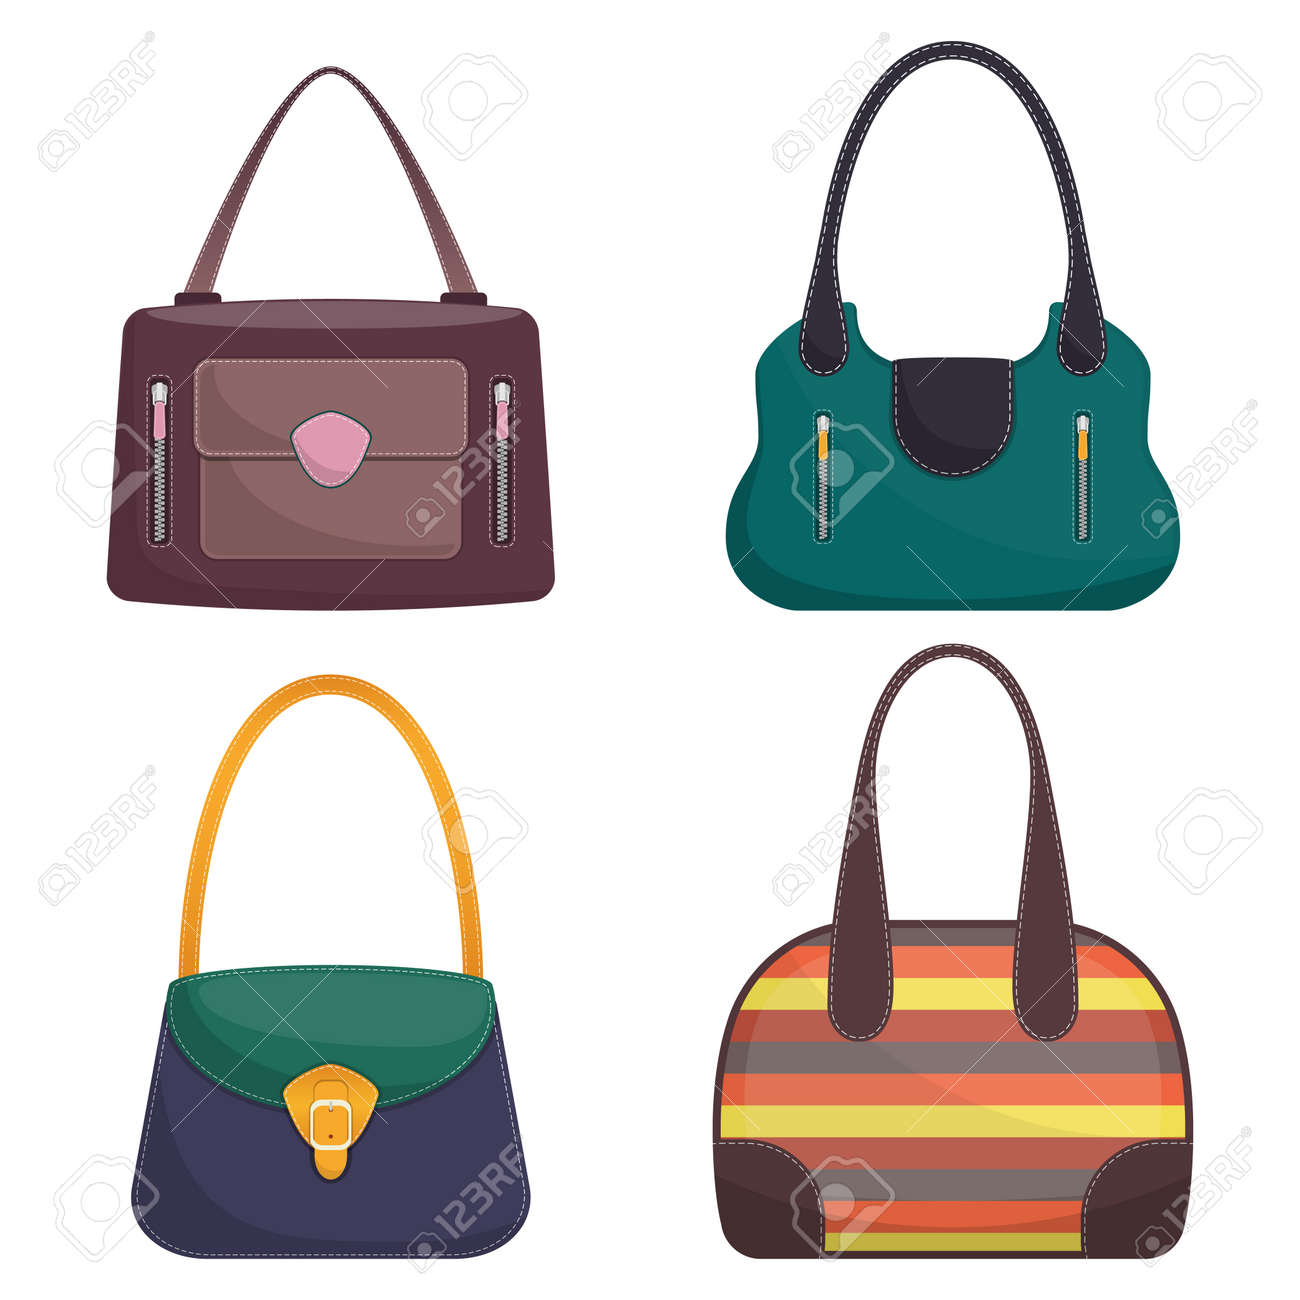 Collection of stylish colorful leather handbags with white stitching. Woman bag. Ladies handbags isolated on white background. Fashion accessories. Vector illustration in flat style.. - 94307123